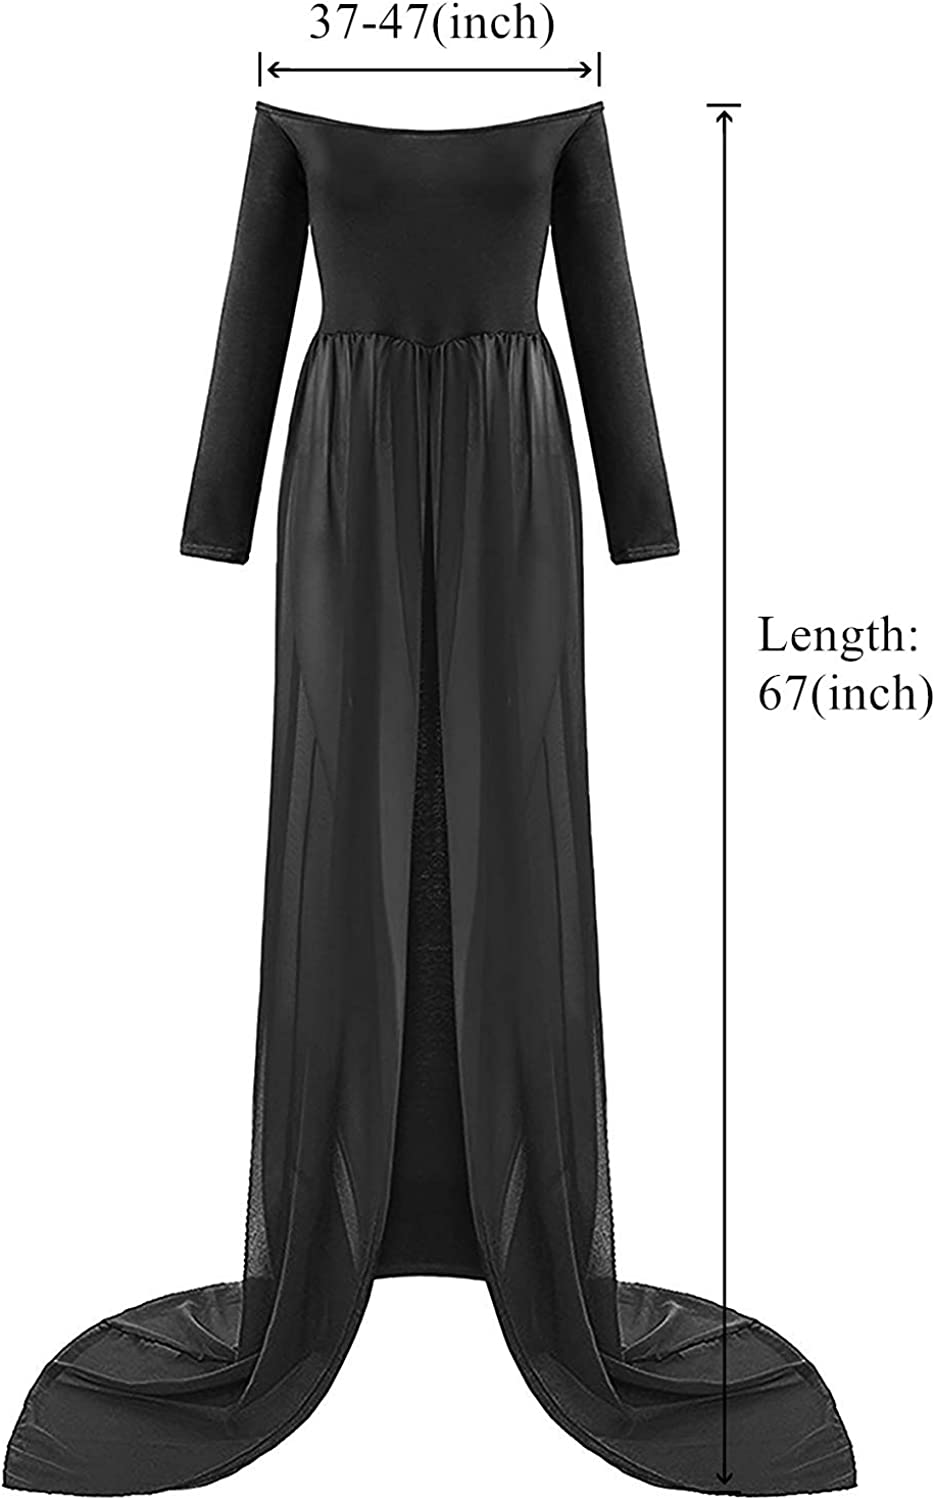 ZIUMUDY Maternity Maxi Chiffon Photography Dress Split Front Gown for Photoshoot (Black) at  Women's Clothing store